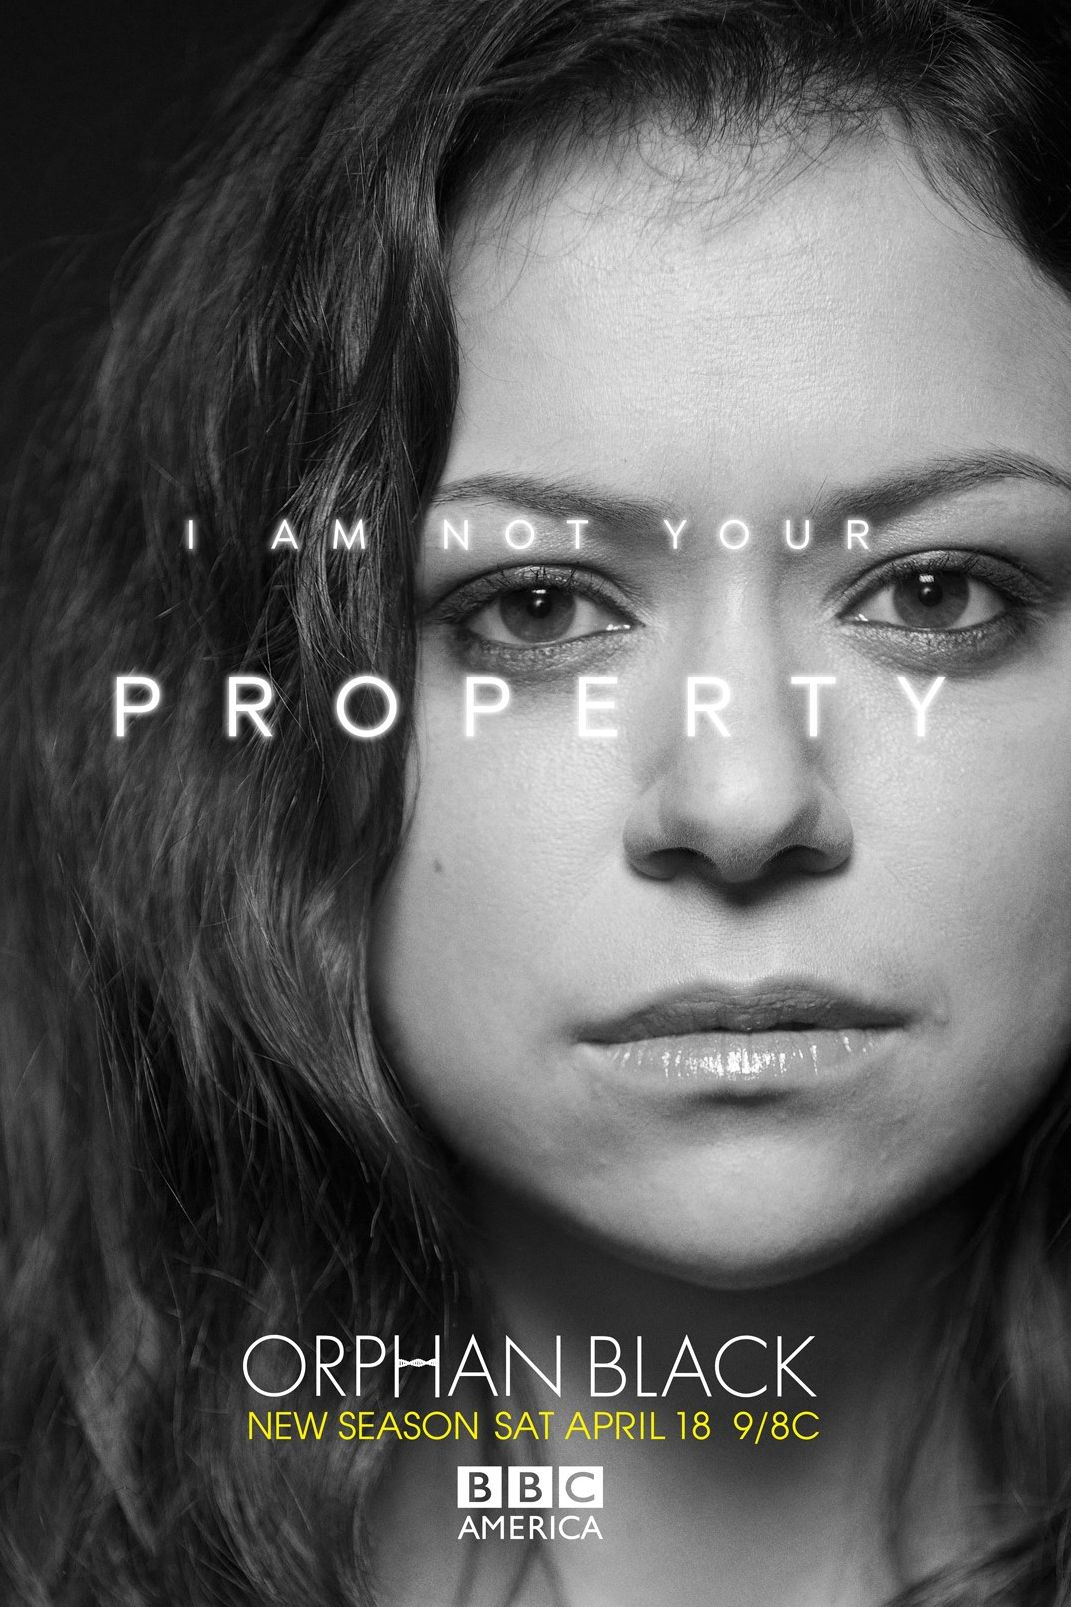 I'm Not Your Property - Sarah Manning in Orphan Black Season